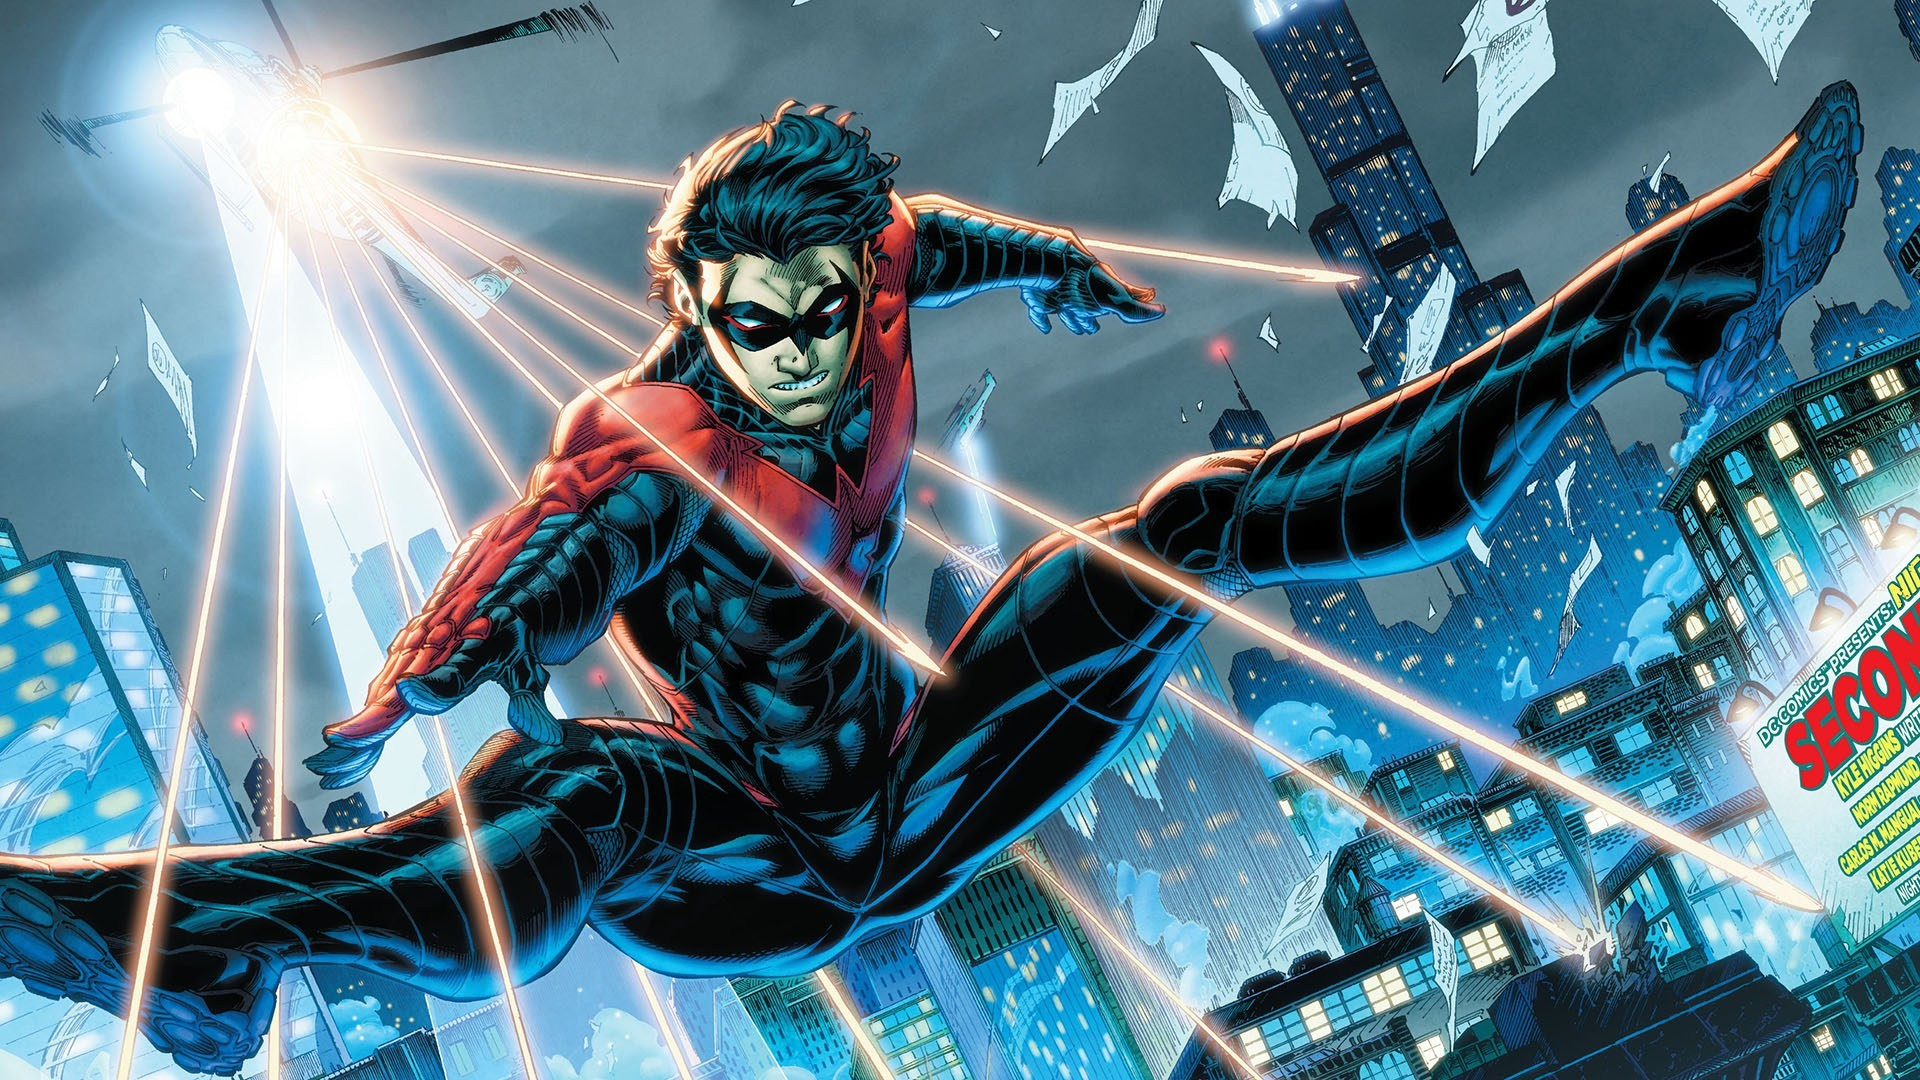 Res: 1920x1080, Superhero Nightwing (Dick Grayson) DC 1080p HD Wallpaper Background